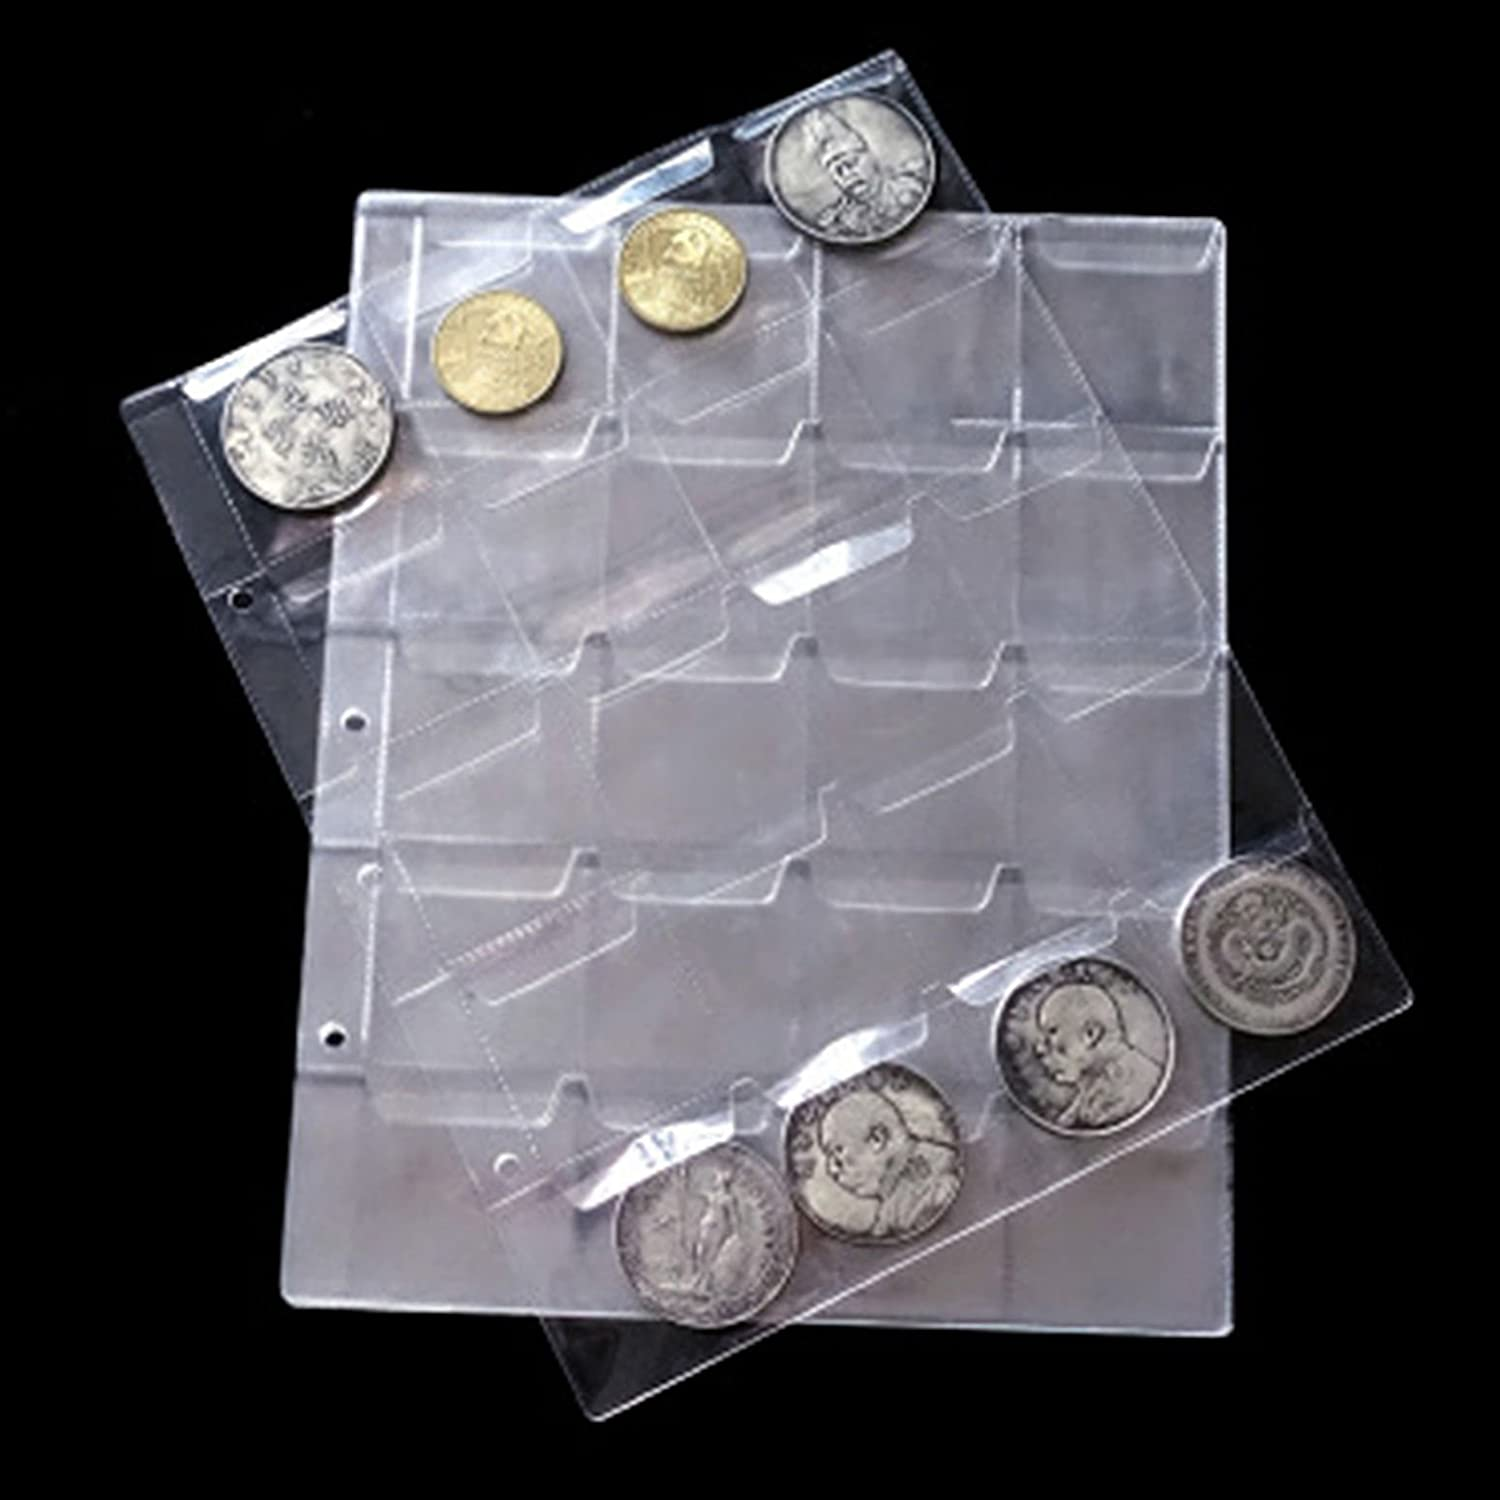 Epaler 5 Sheet 20 Pockets Plastic Coin Holders Storage Collection Money Album Case Stamp Currency Protector Insert Page Sheets Holder eForsky